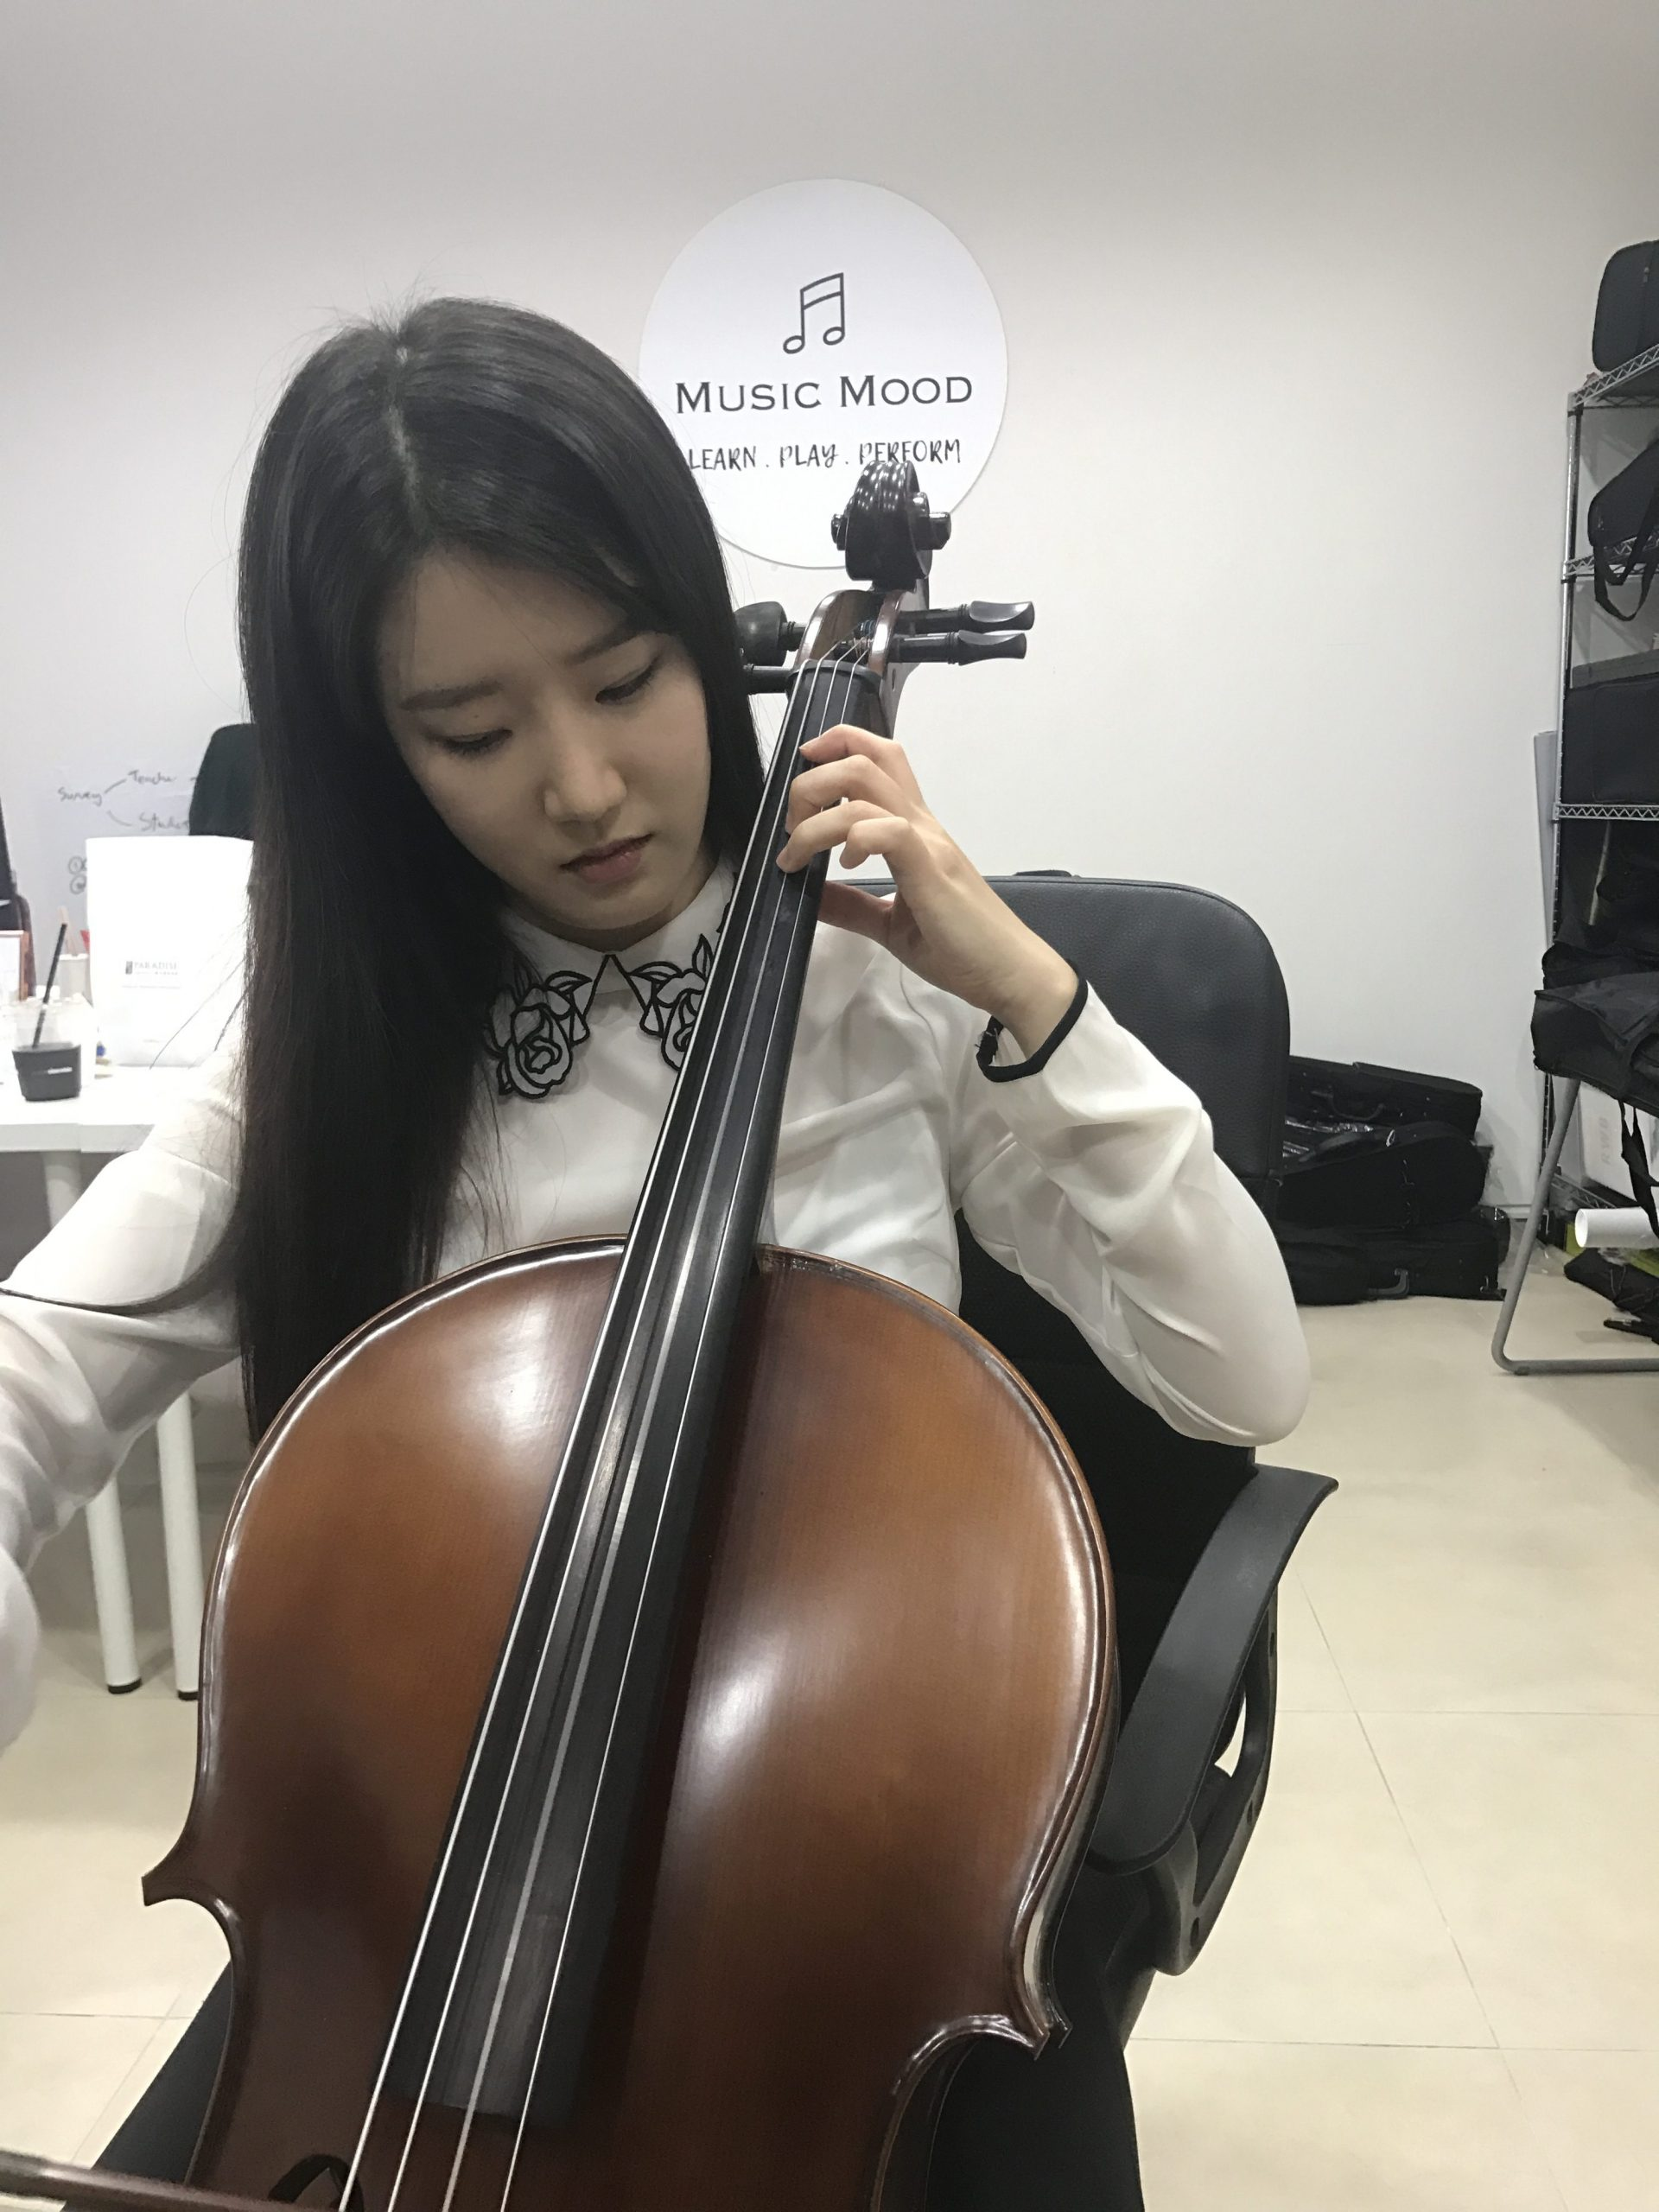 Sora trying out cello in singapore